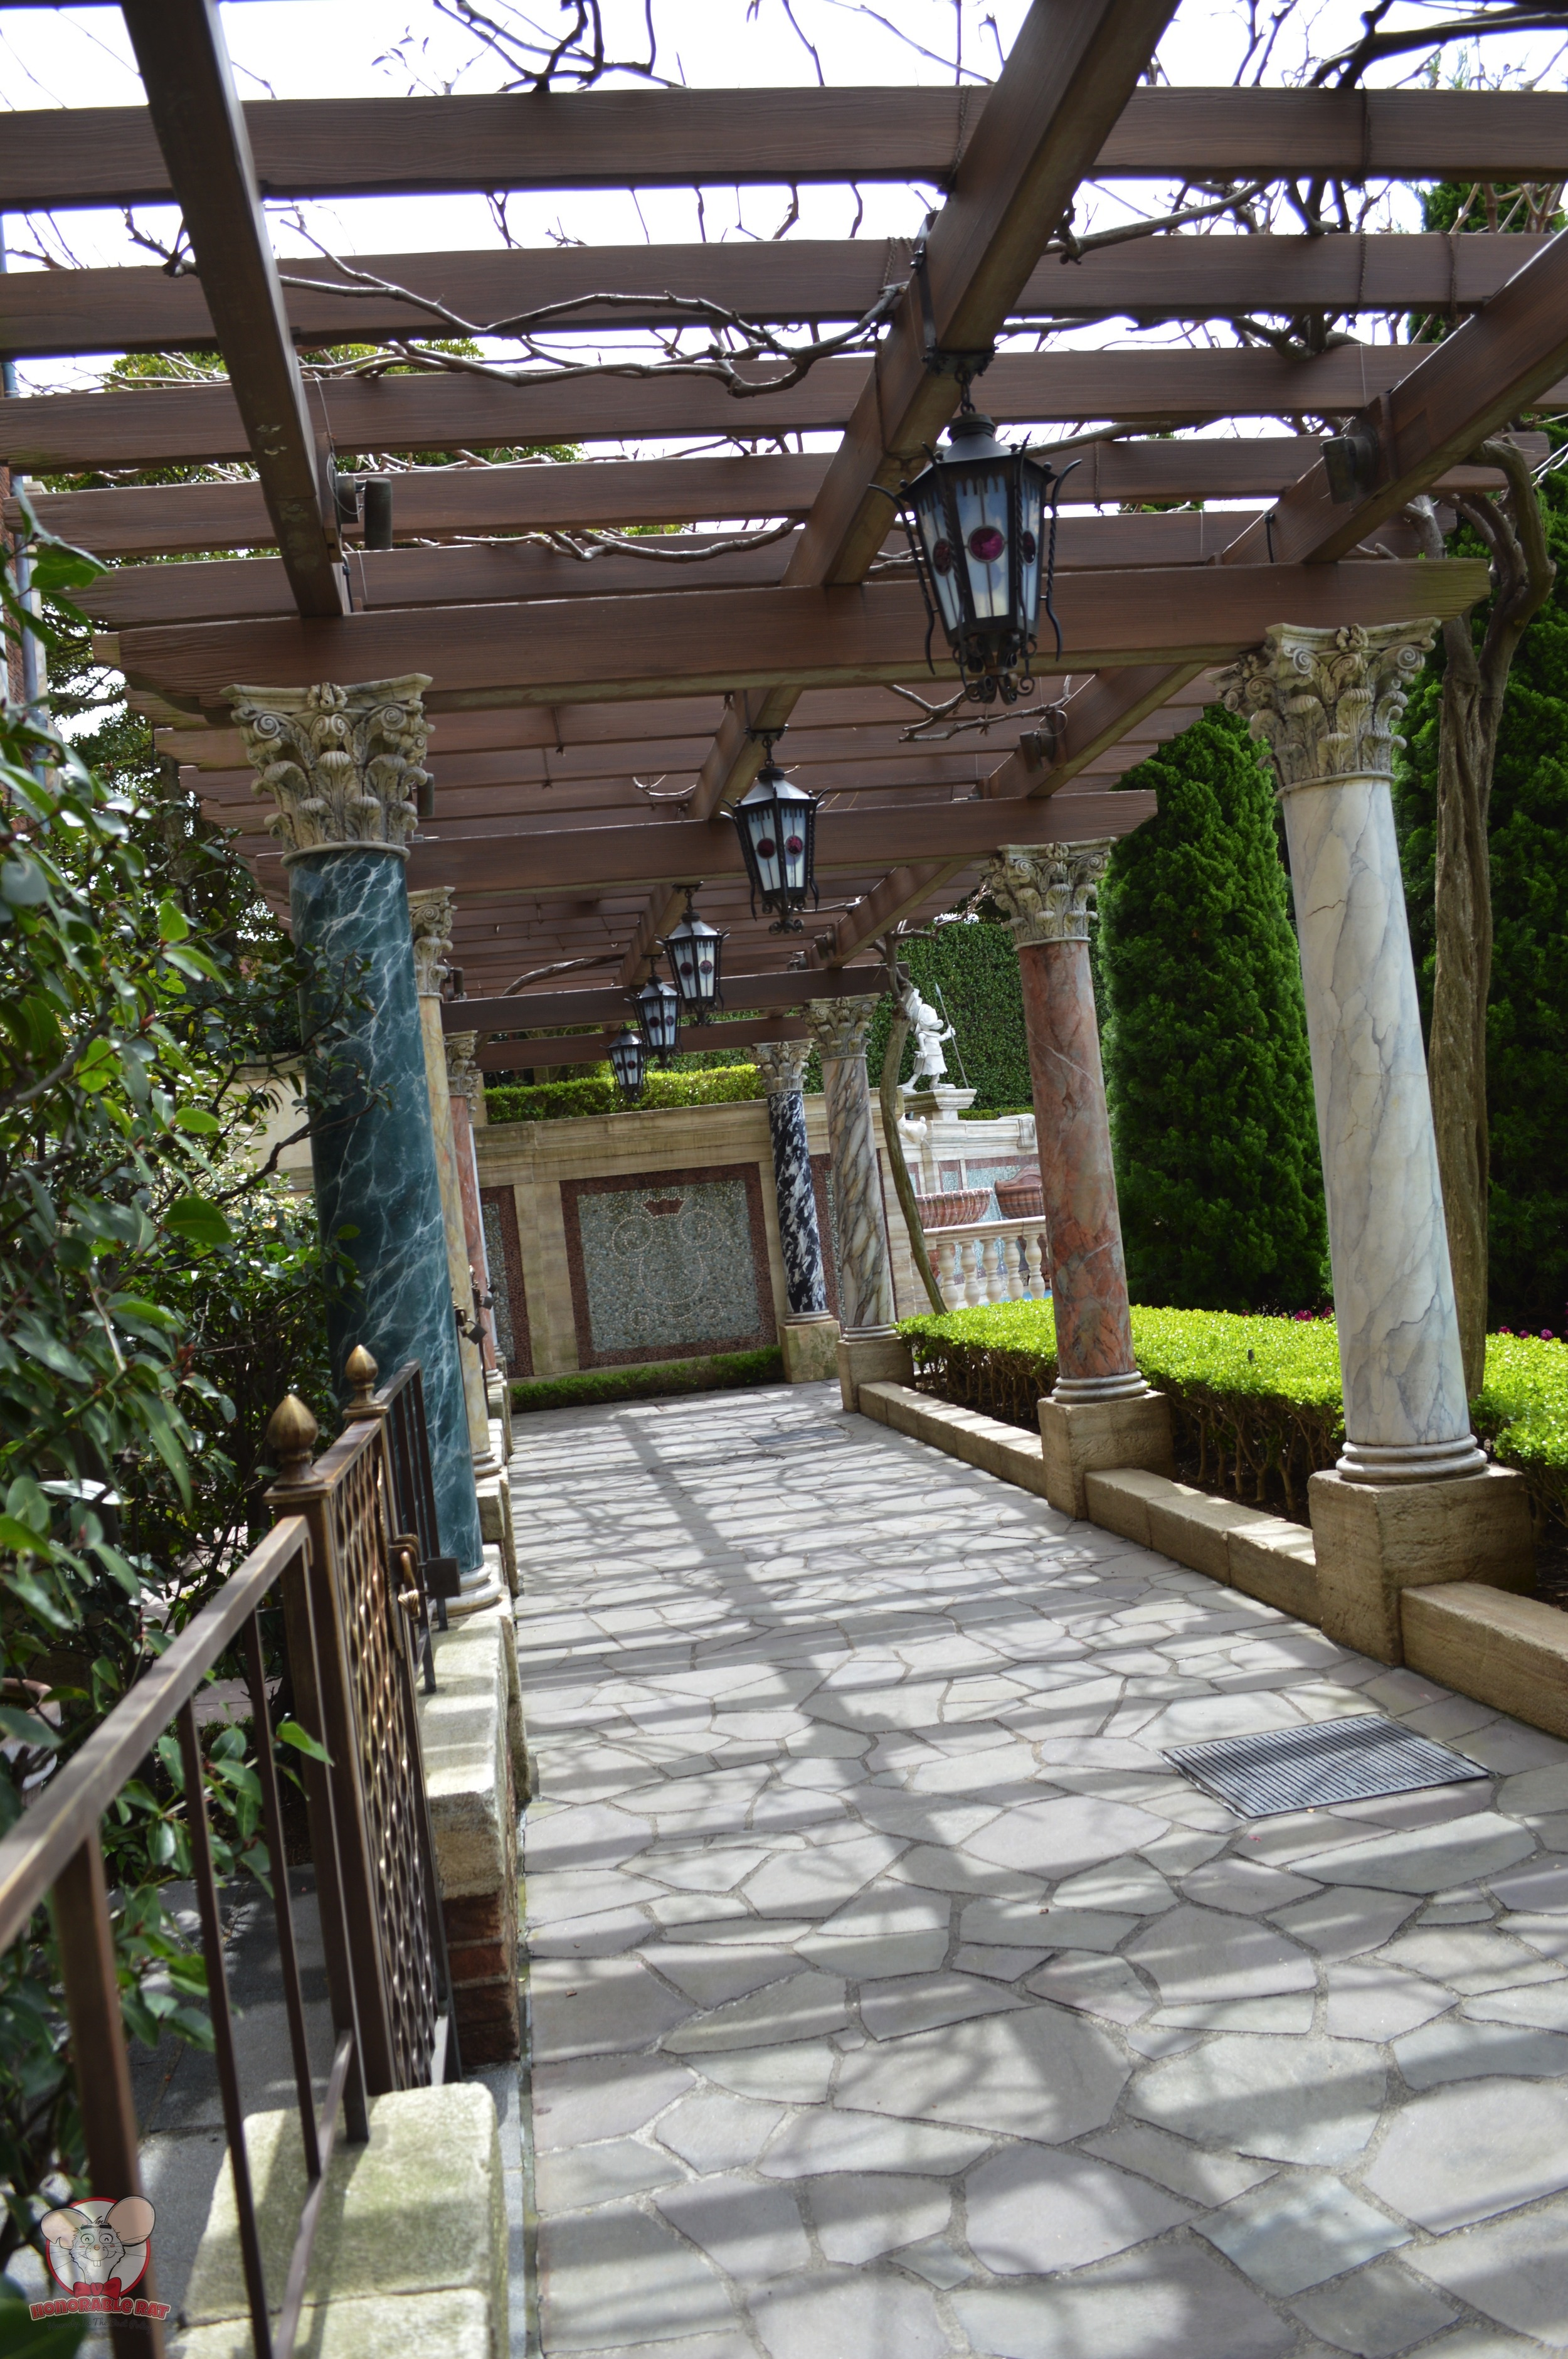 Another look at the walkway